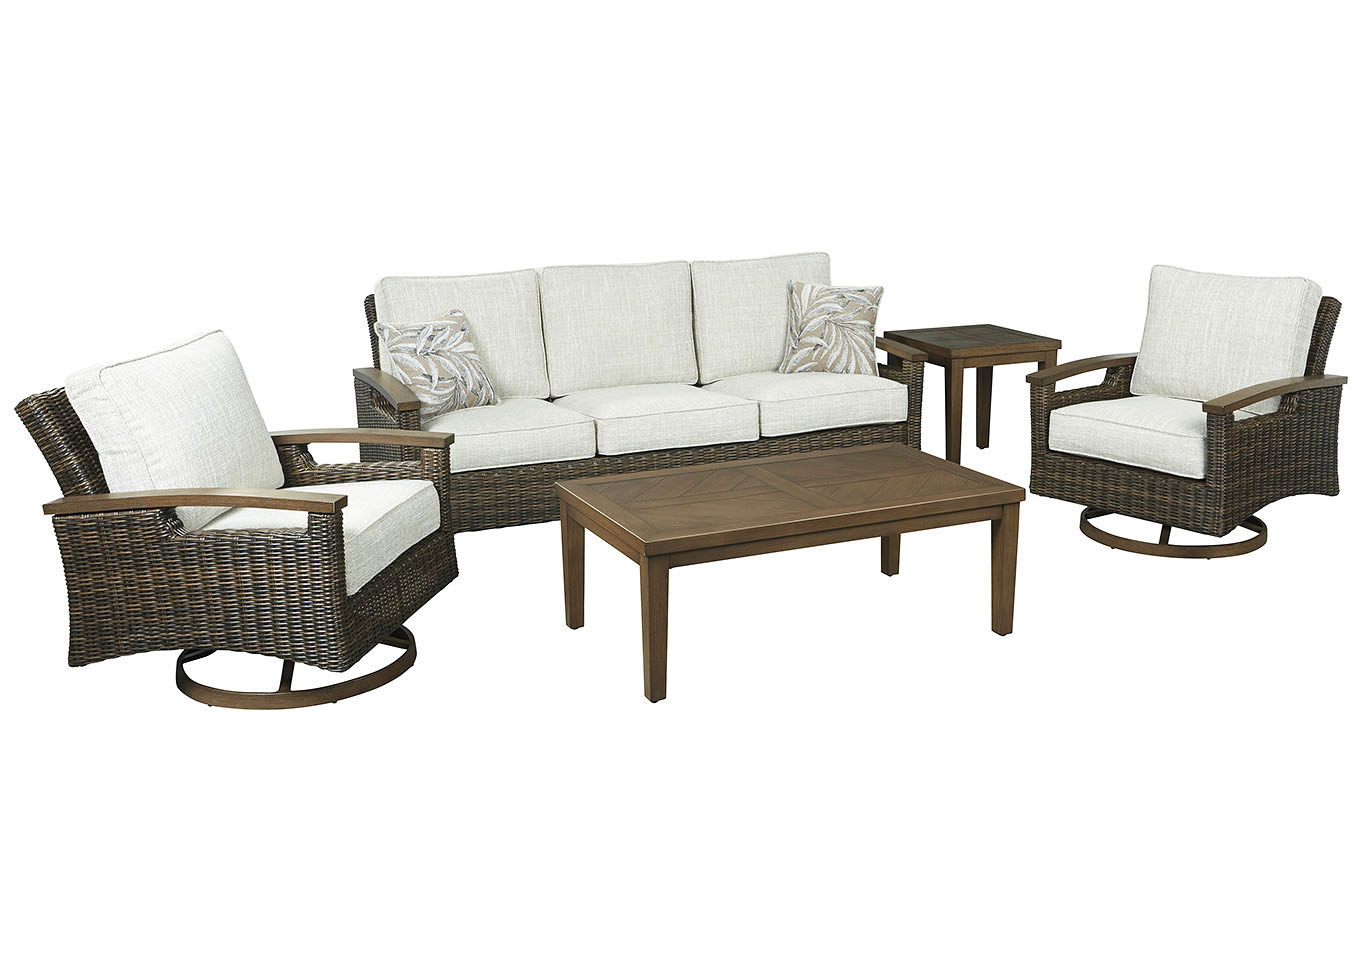 Paradise Trail Brown Sofa w/2 Swivel Chairs, Coffee Table & End Table,Outdoor By Ashley